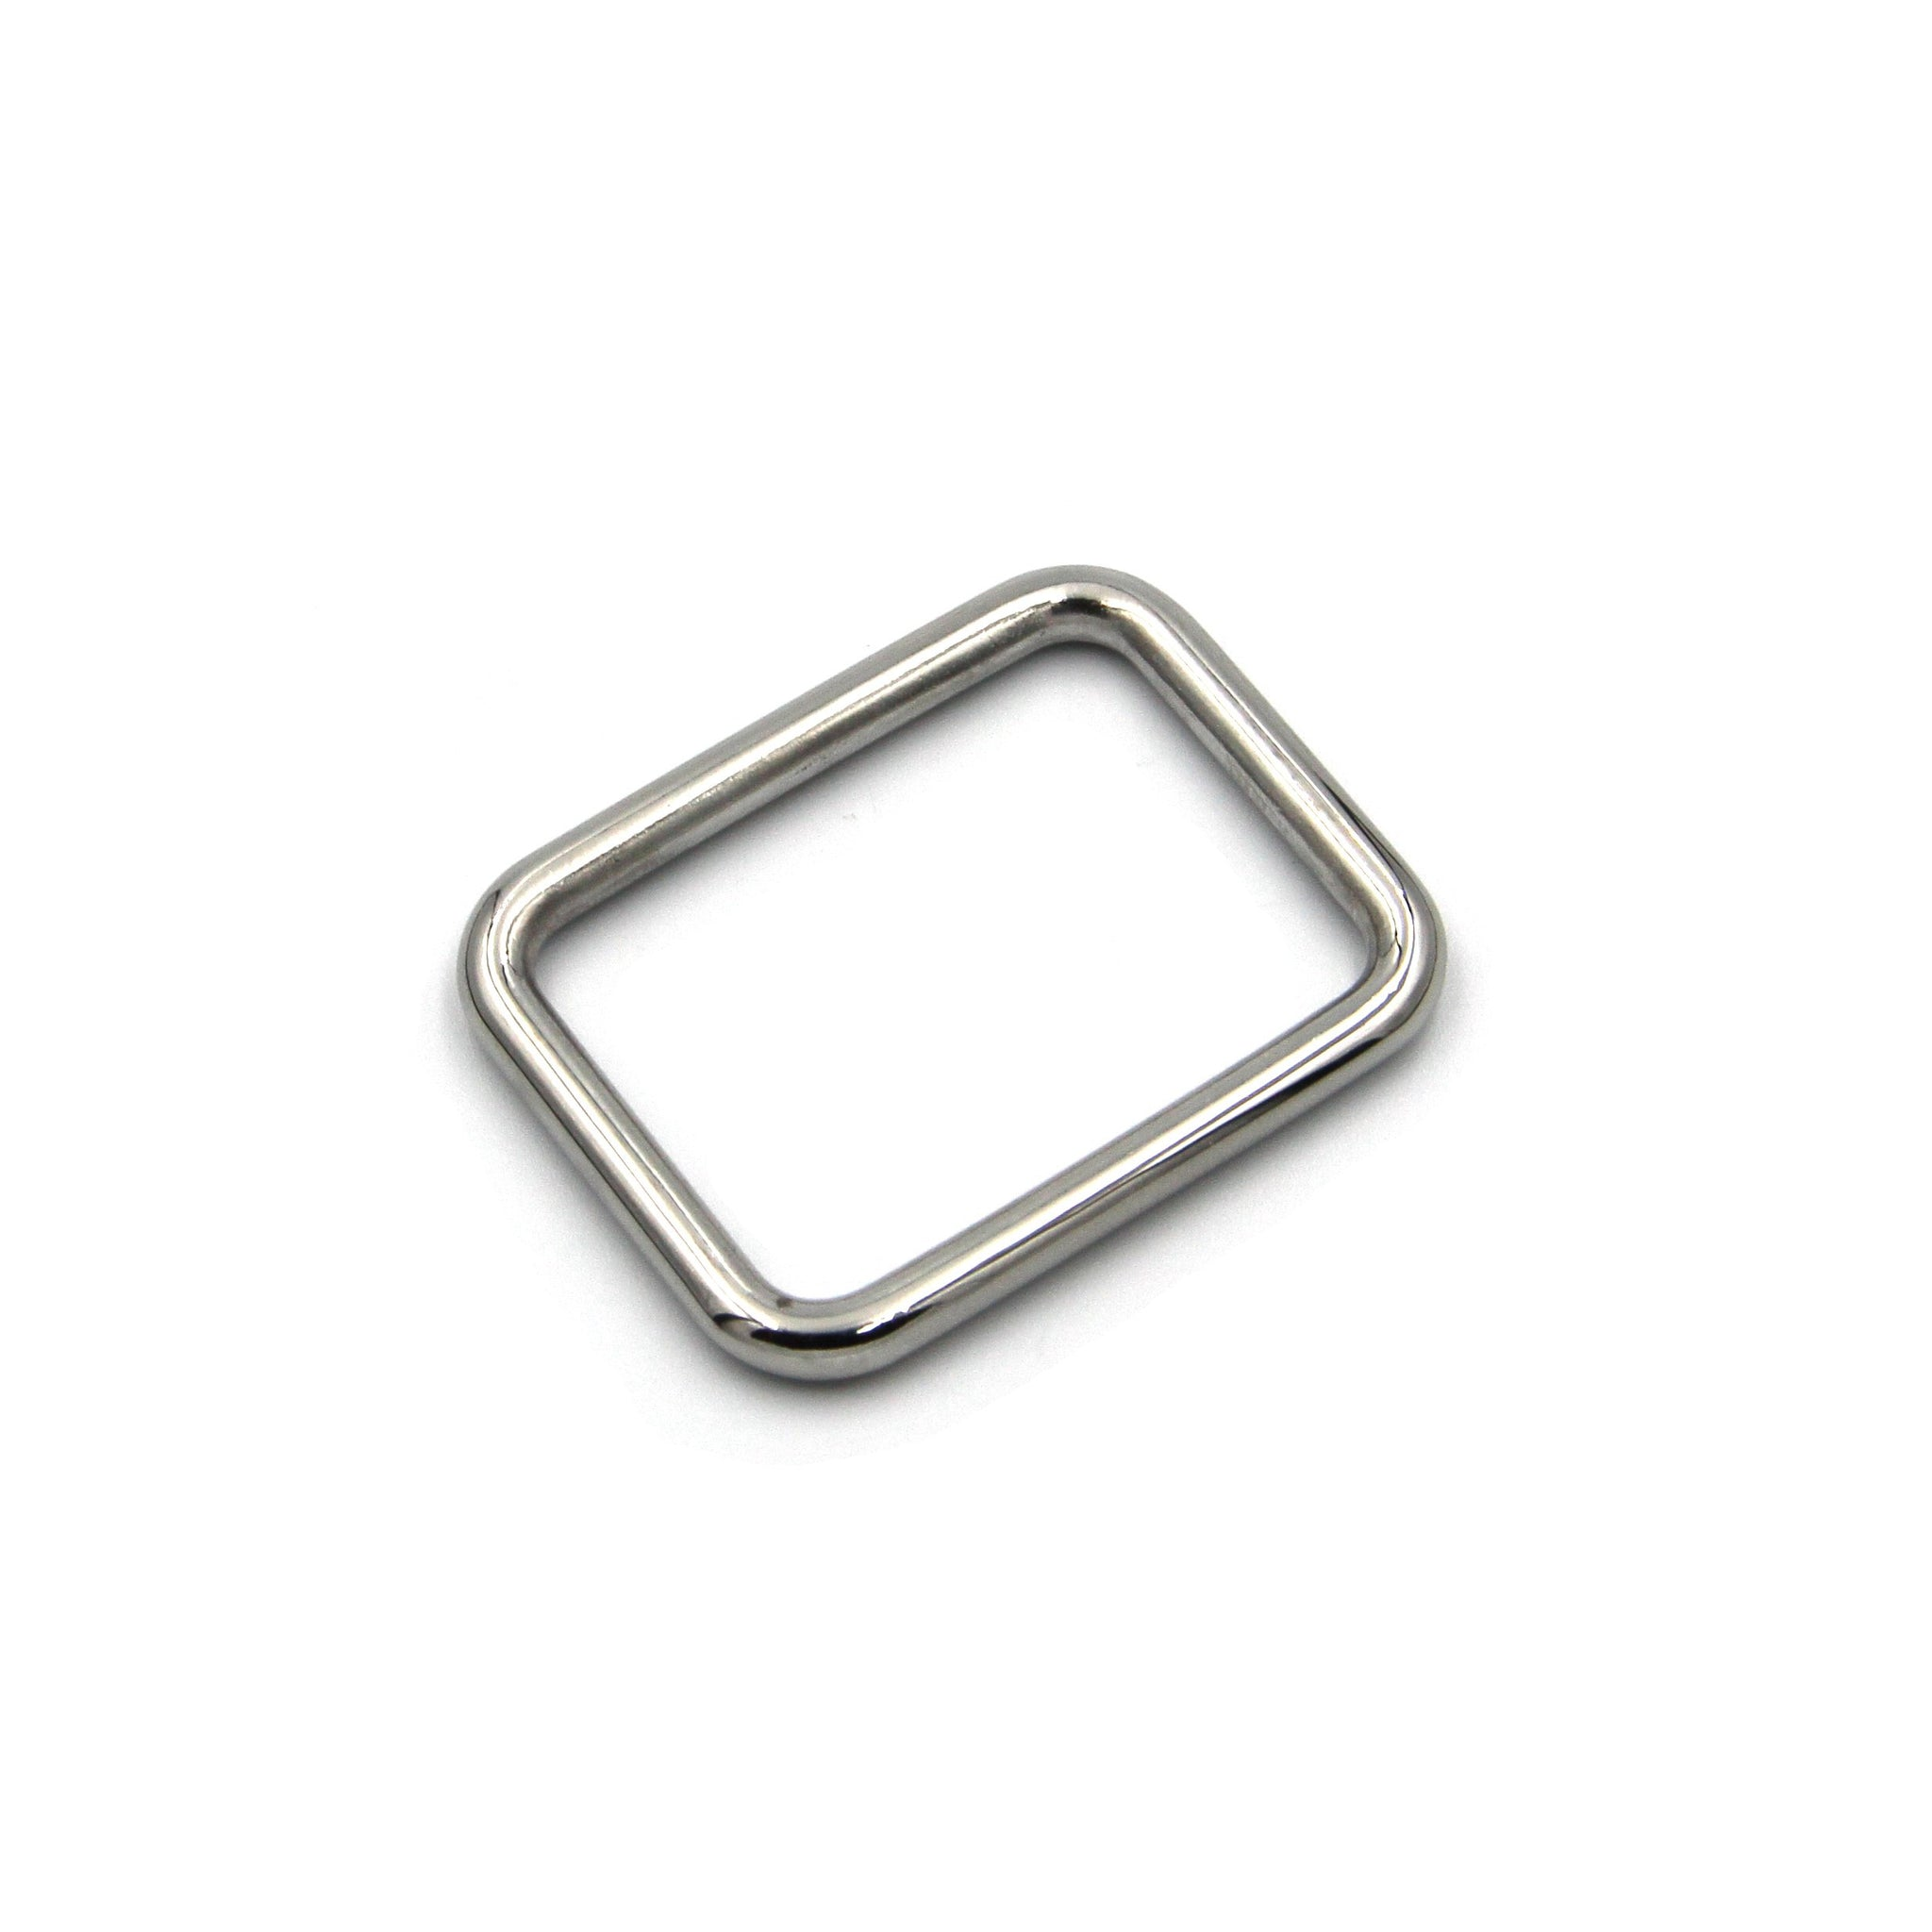 Stainless Rectangular Loop Seamless 40mm - Metal Field